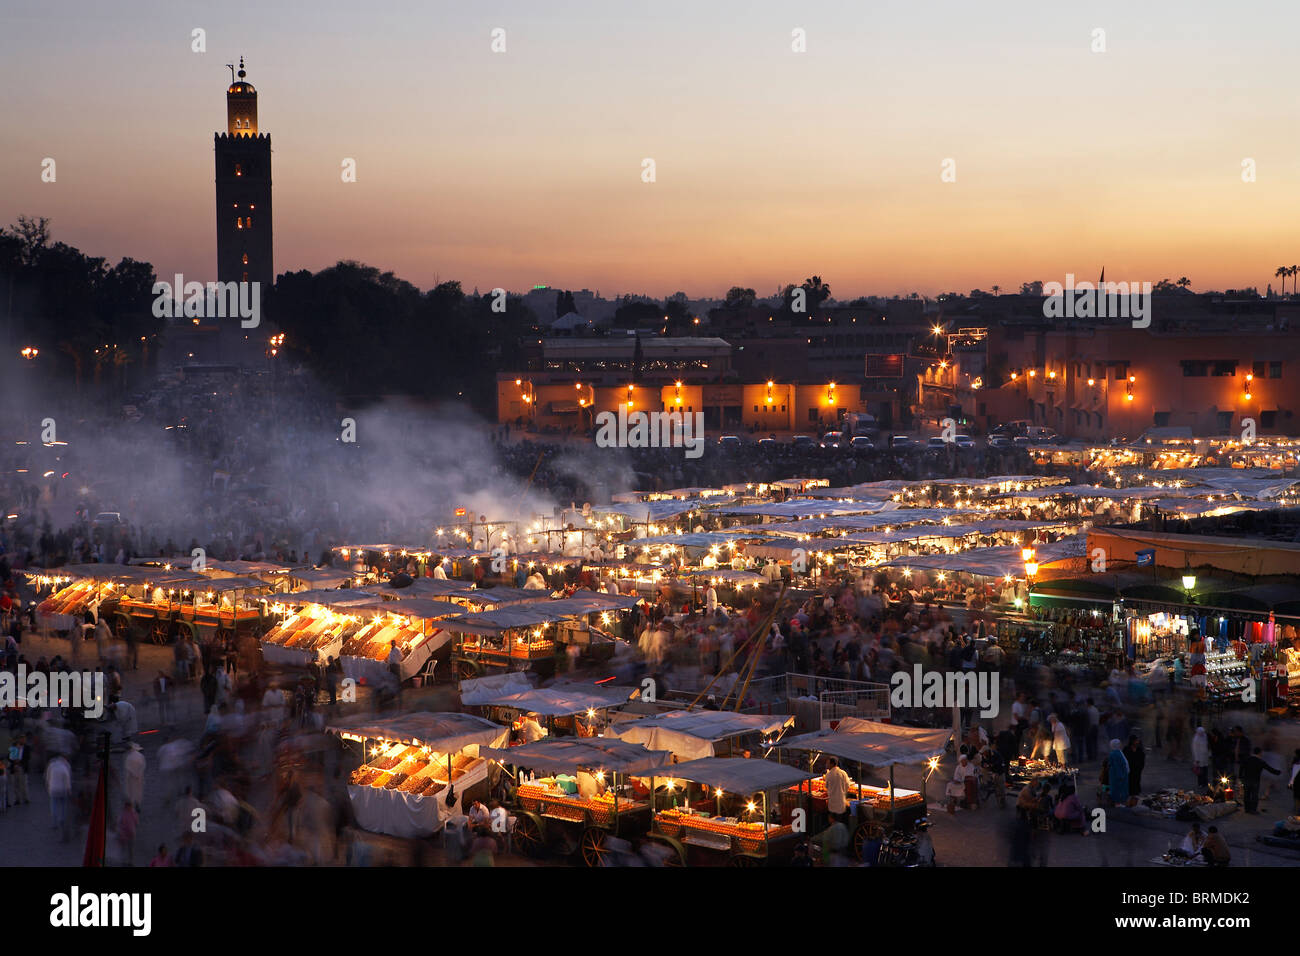 MARRAKESH: ELEVATED VIEW FOOD STALLS IN DJEMAA EL FNA AND KOUTOUBIA MOSQUE AT SUNSET - Stock Image